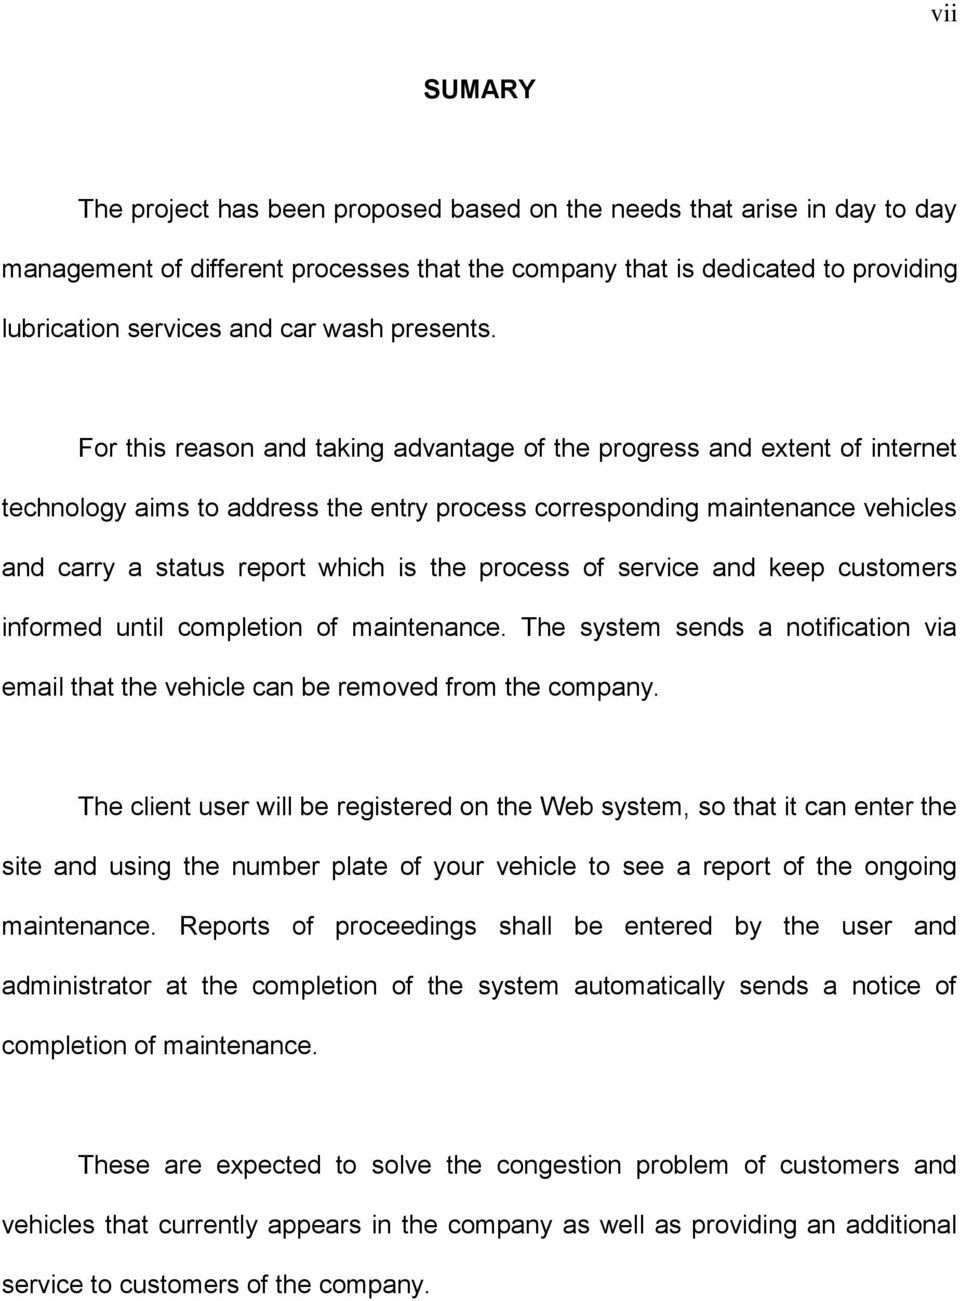 For this reason and taking advantage of the progress and extent of internet technology aims to address the entry process corresponding maintenance vehicles and carry a status report which is the